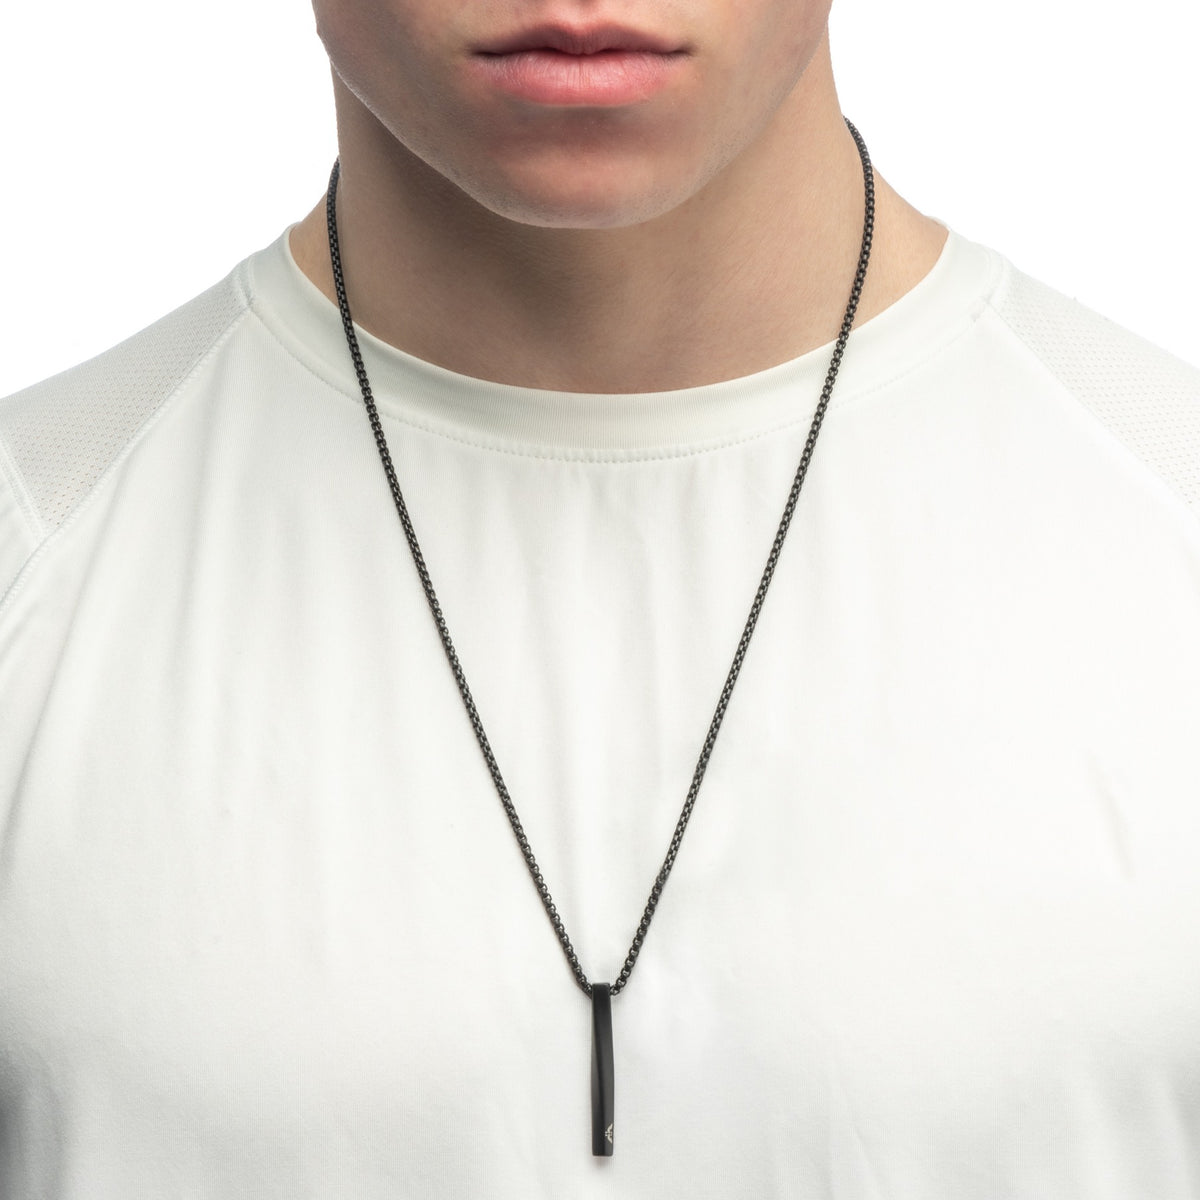 Aeon | Budapest Necklace | Matt Black Ion Plated Stainless Steel